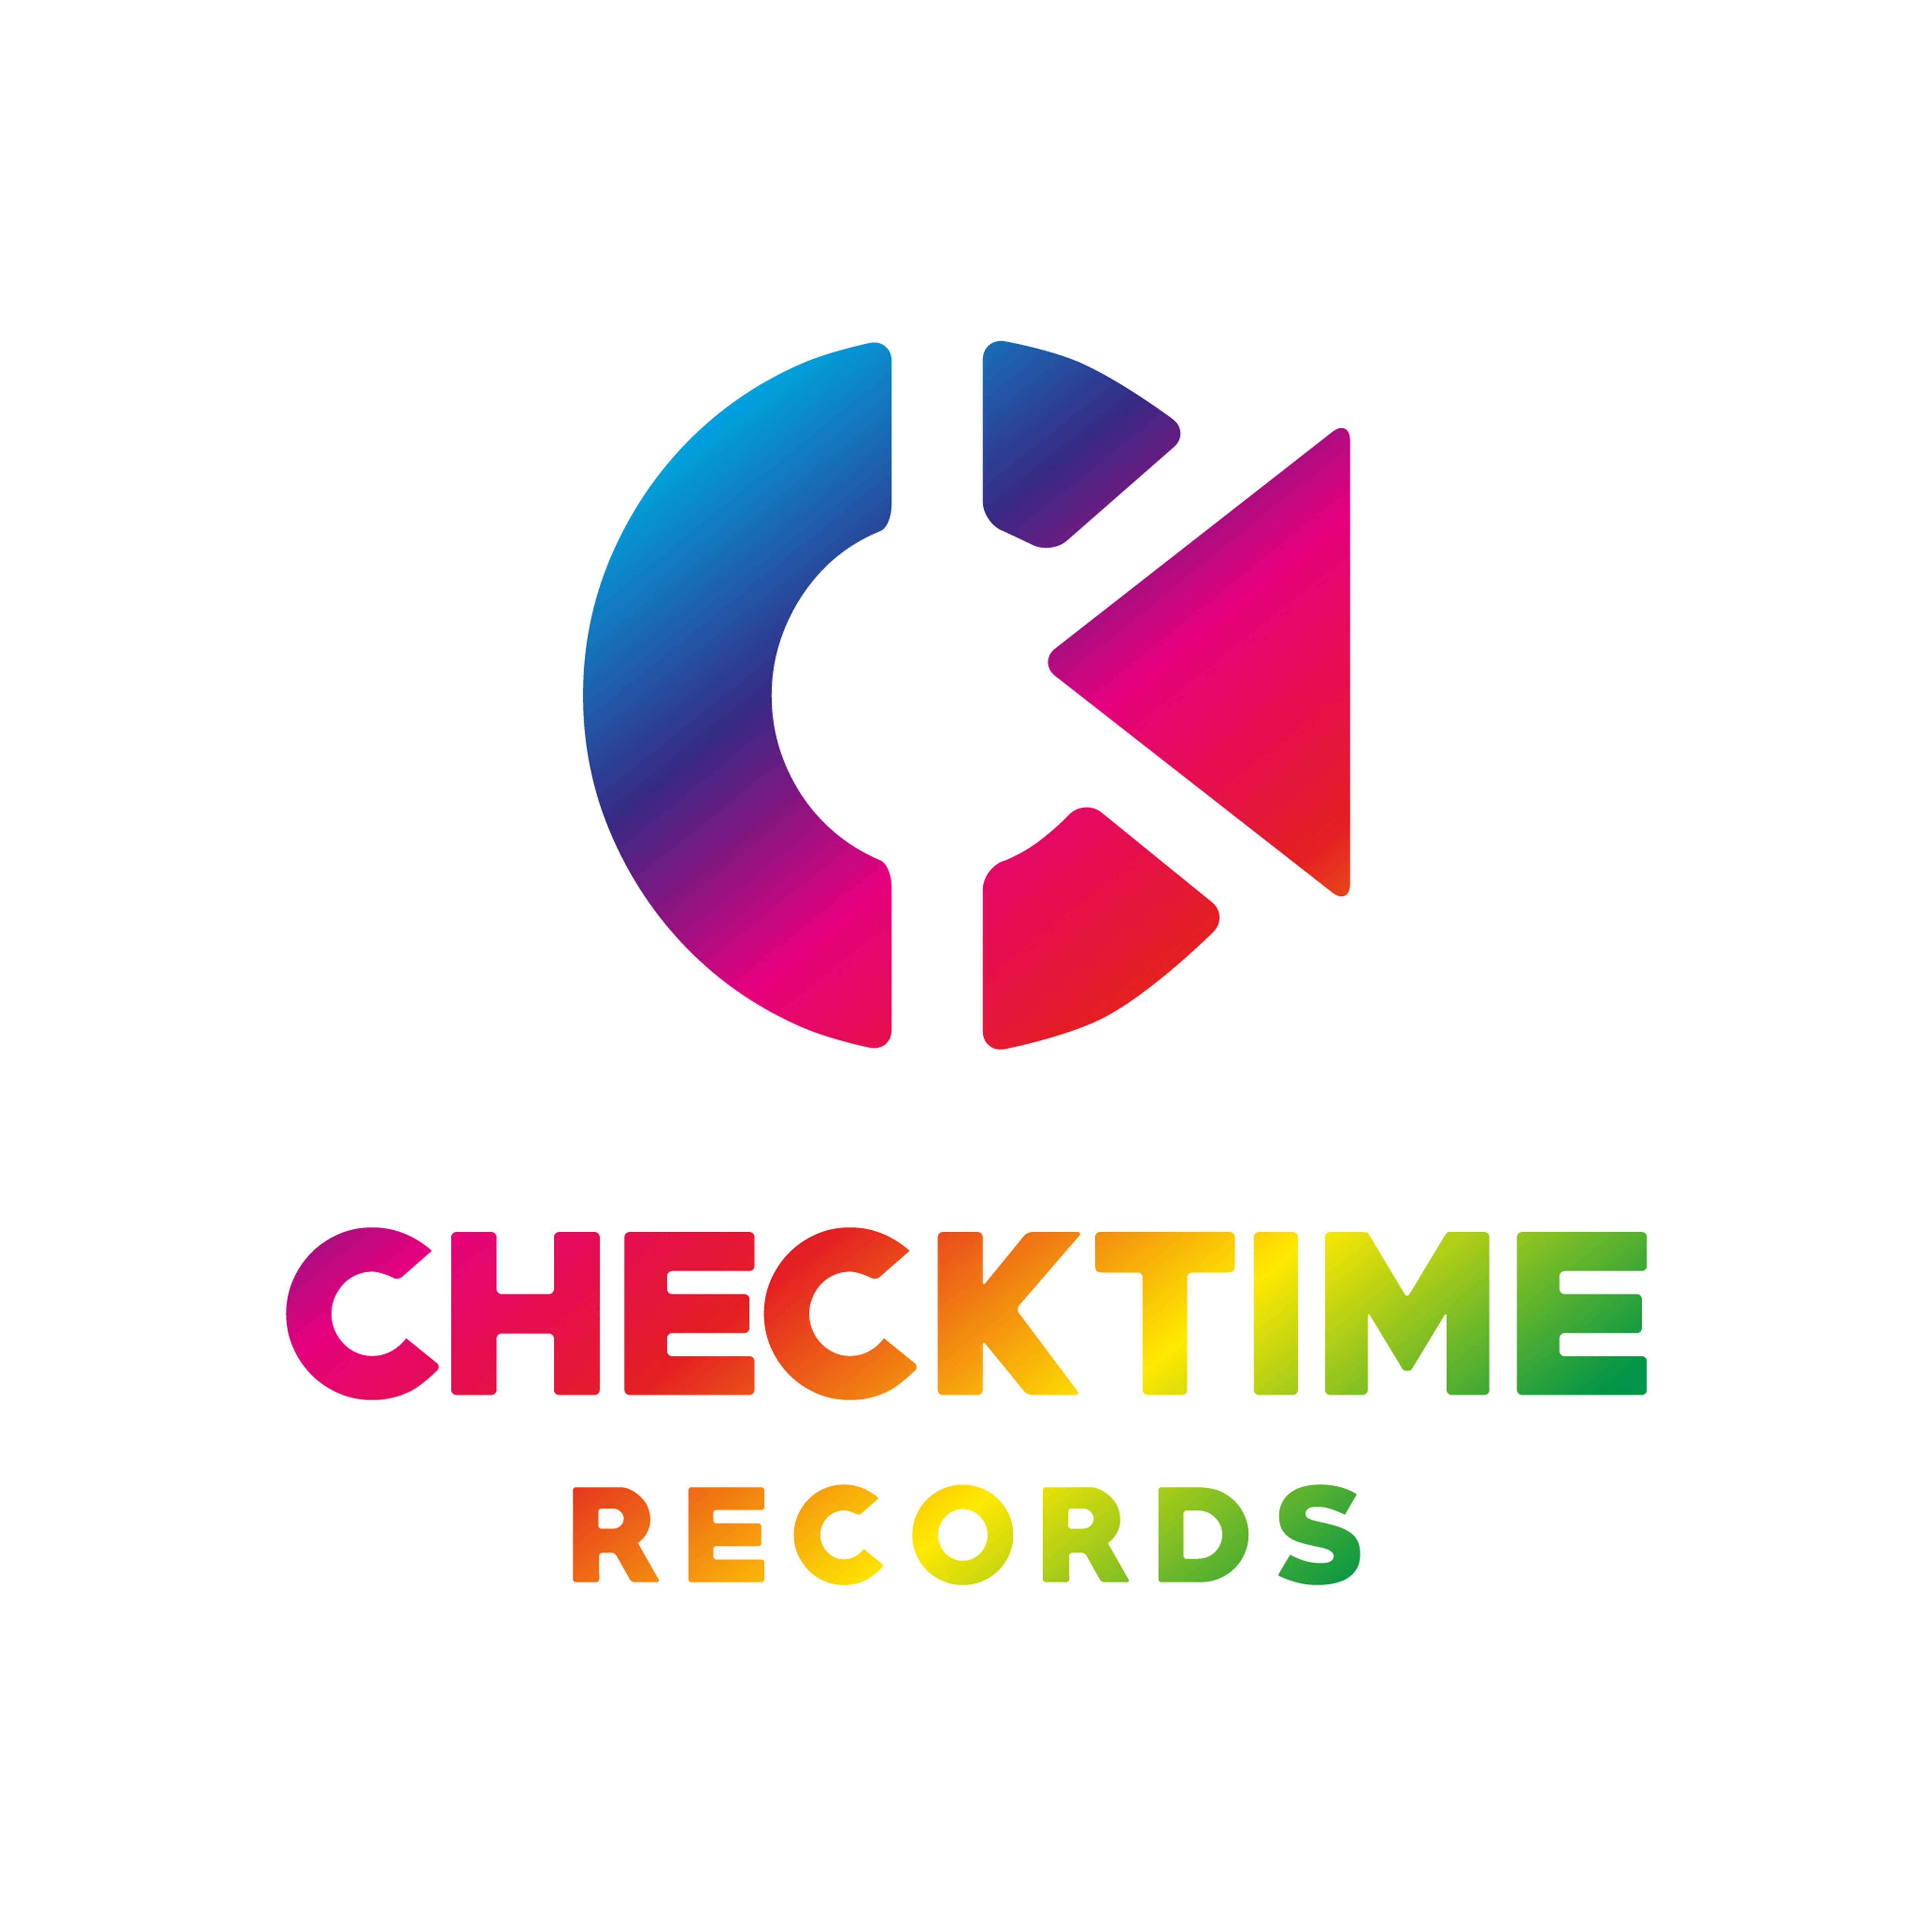 Checktime Records